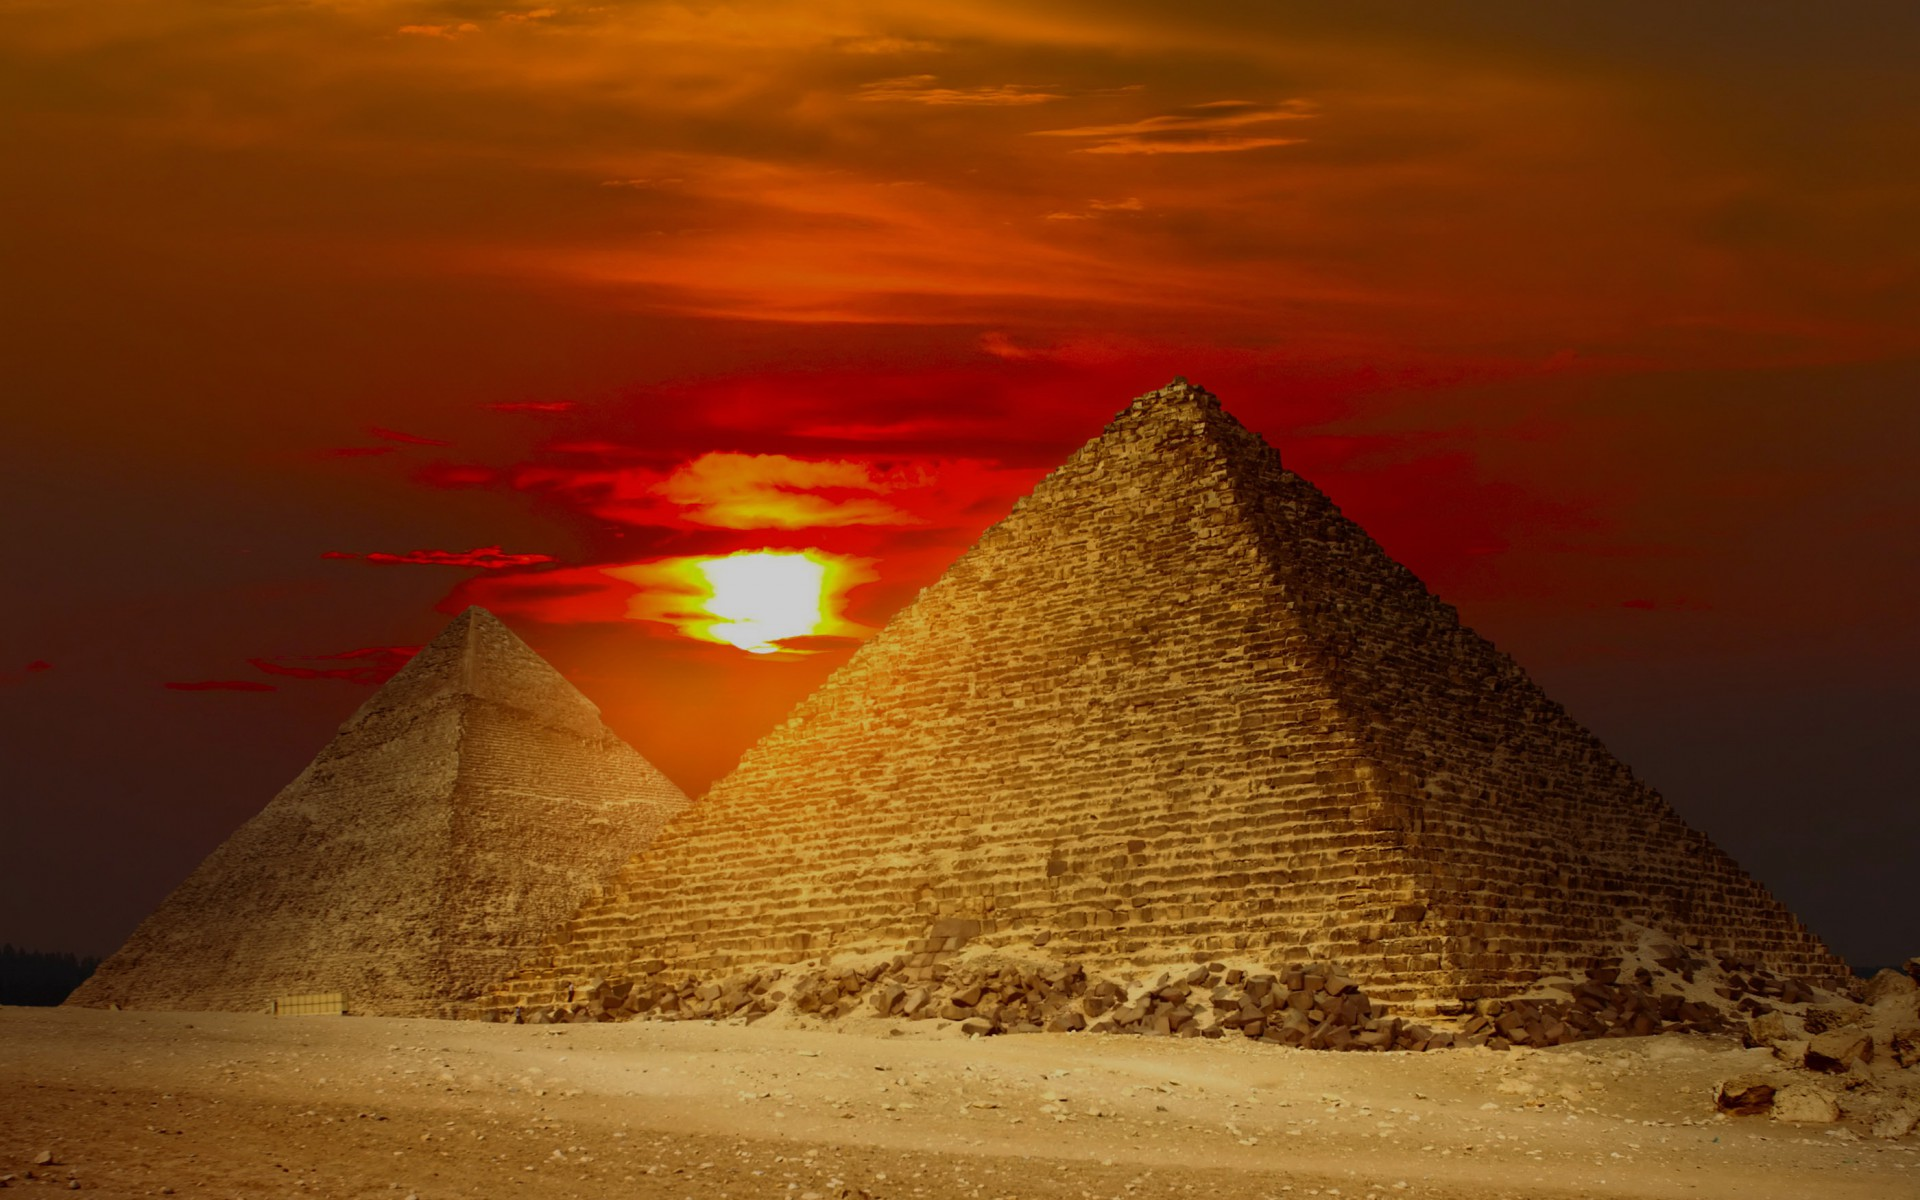 1920x1200 giza pyramids egypt red sunset desktop pc and for Home wallpaper egypt